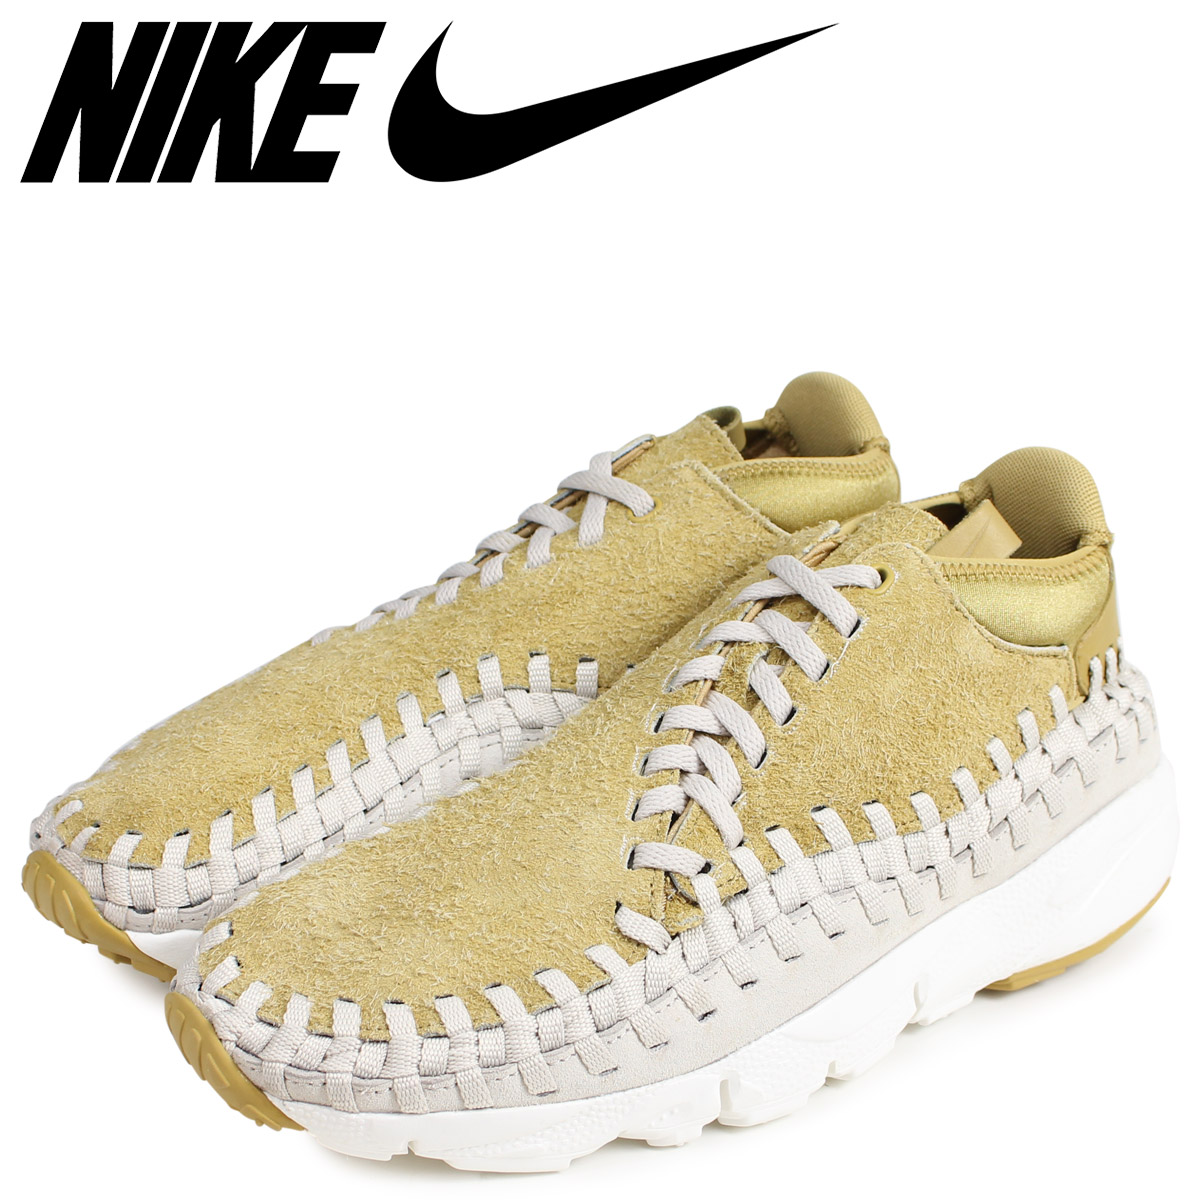 brand new 17a20 5c47e NIKE Nike air feet cape Woo sneakers men AIR FOOTSCAPE WOVEN CHUKKA QS  brown 913,929-700  load planned Shinnyu load in reservation product 2 27  containing